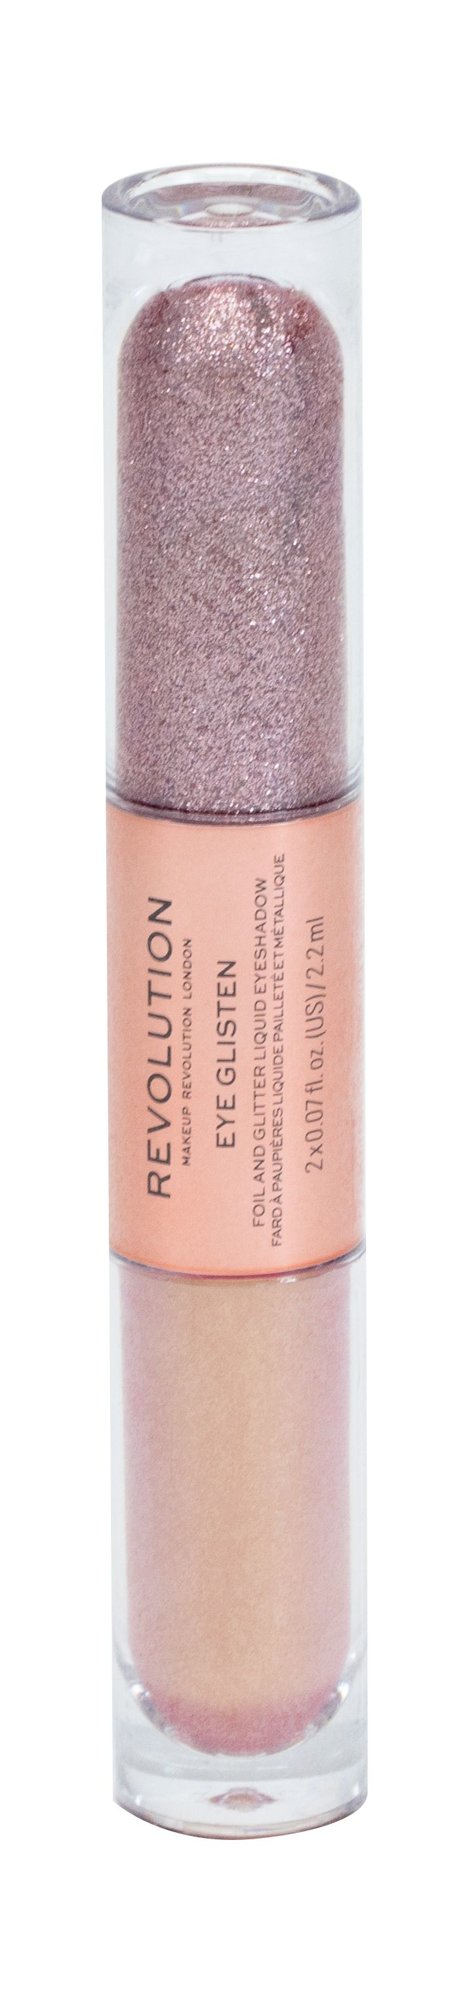 Makeup Revolution London Eye Glisten  Oční stín, W, 4,4 ml